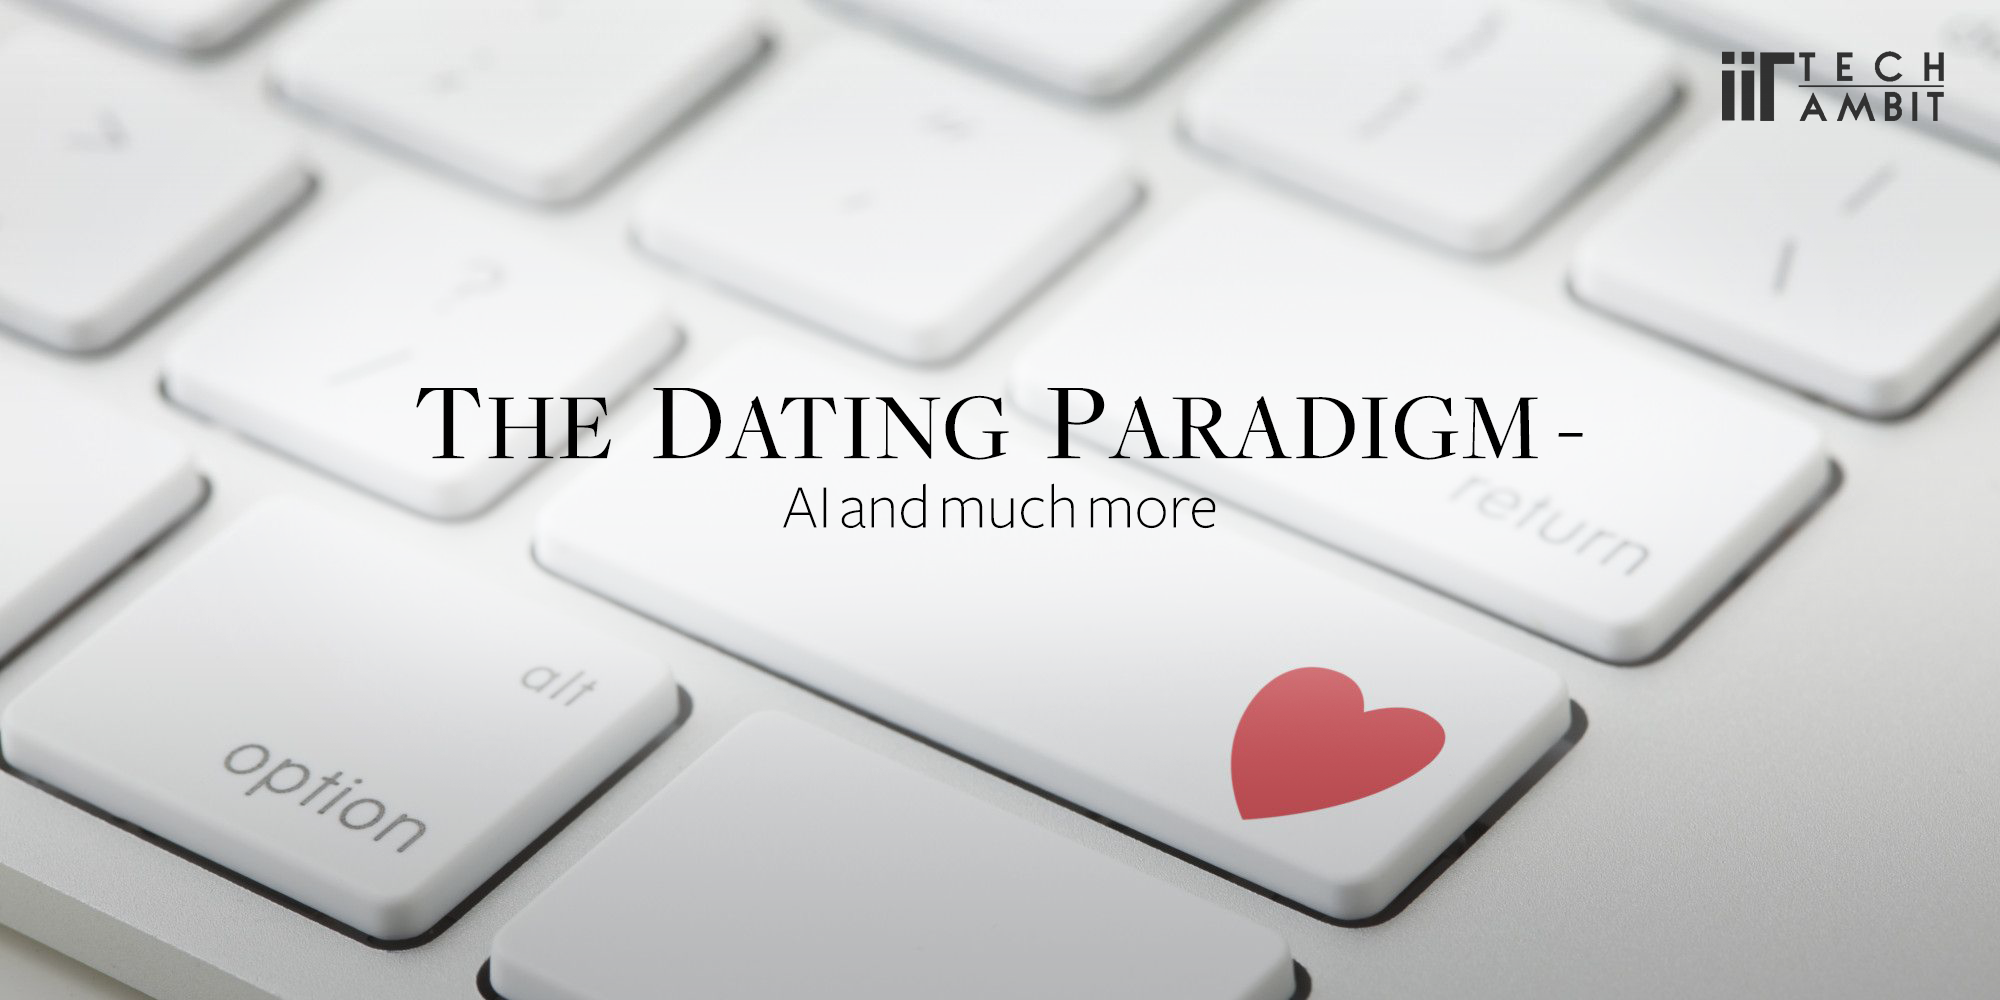 The Dating Paradigm - AI and much more